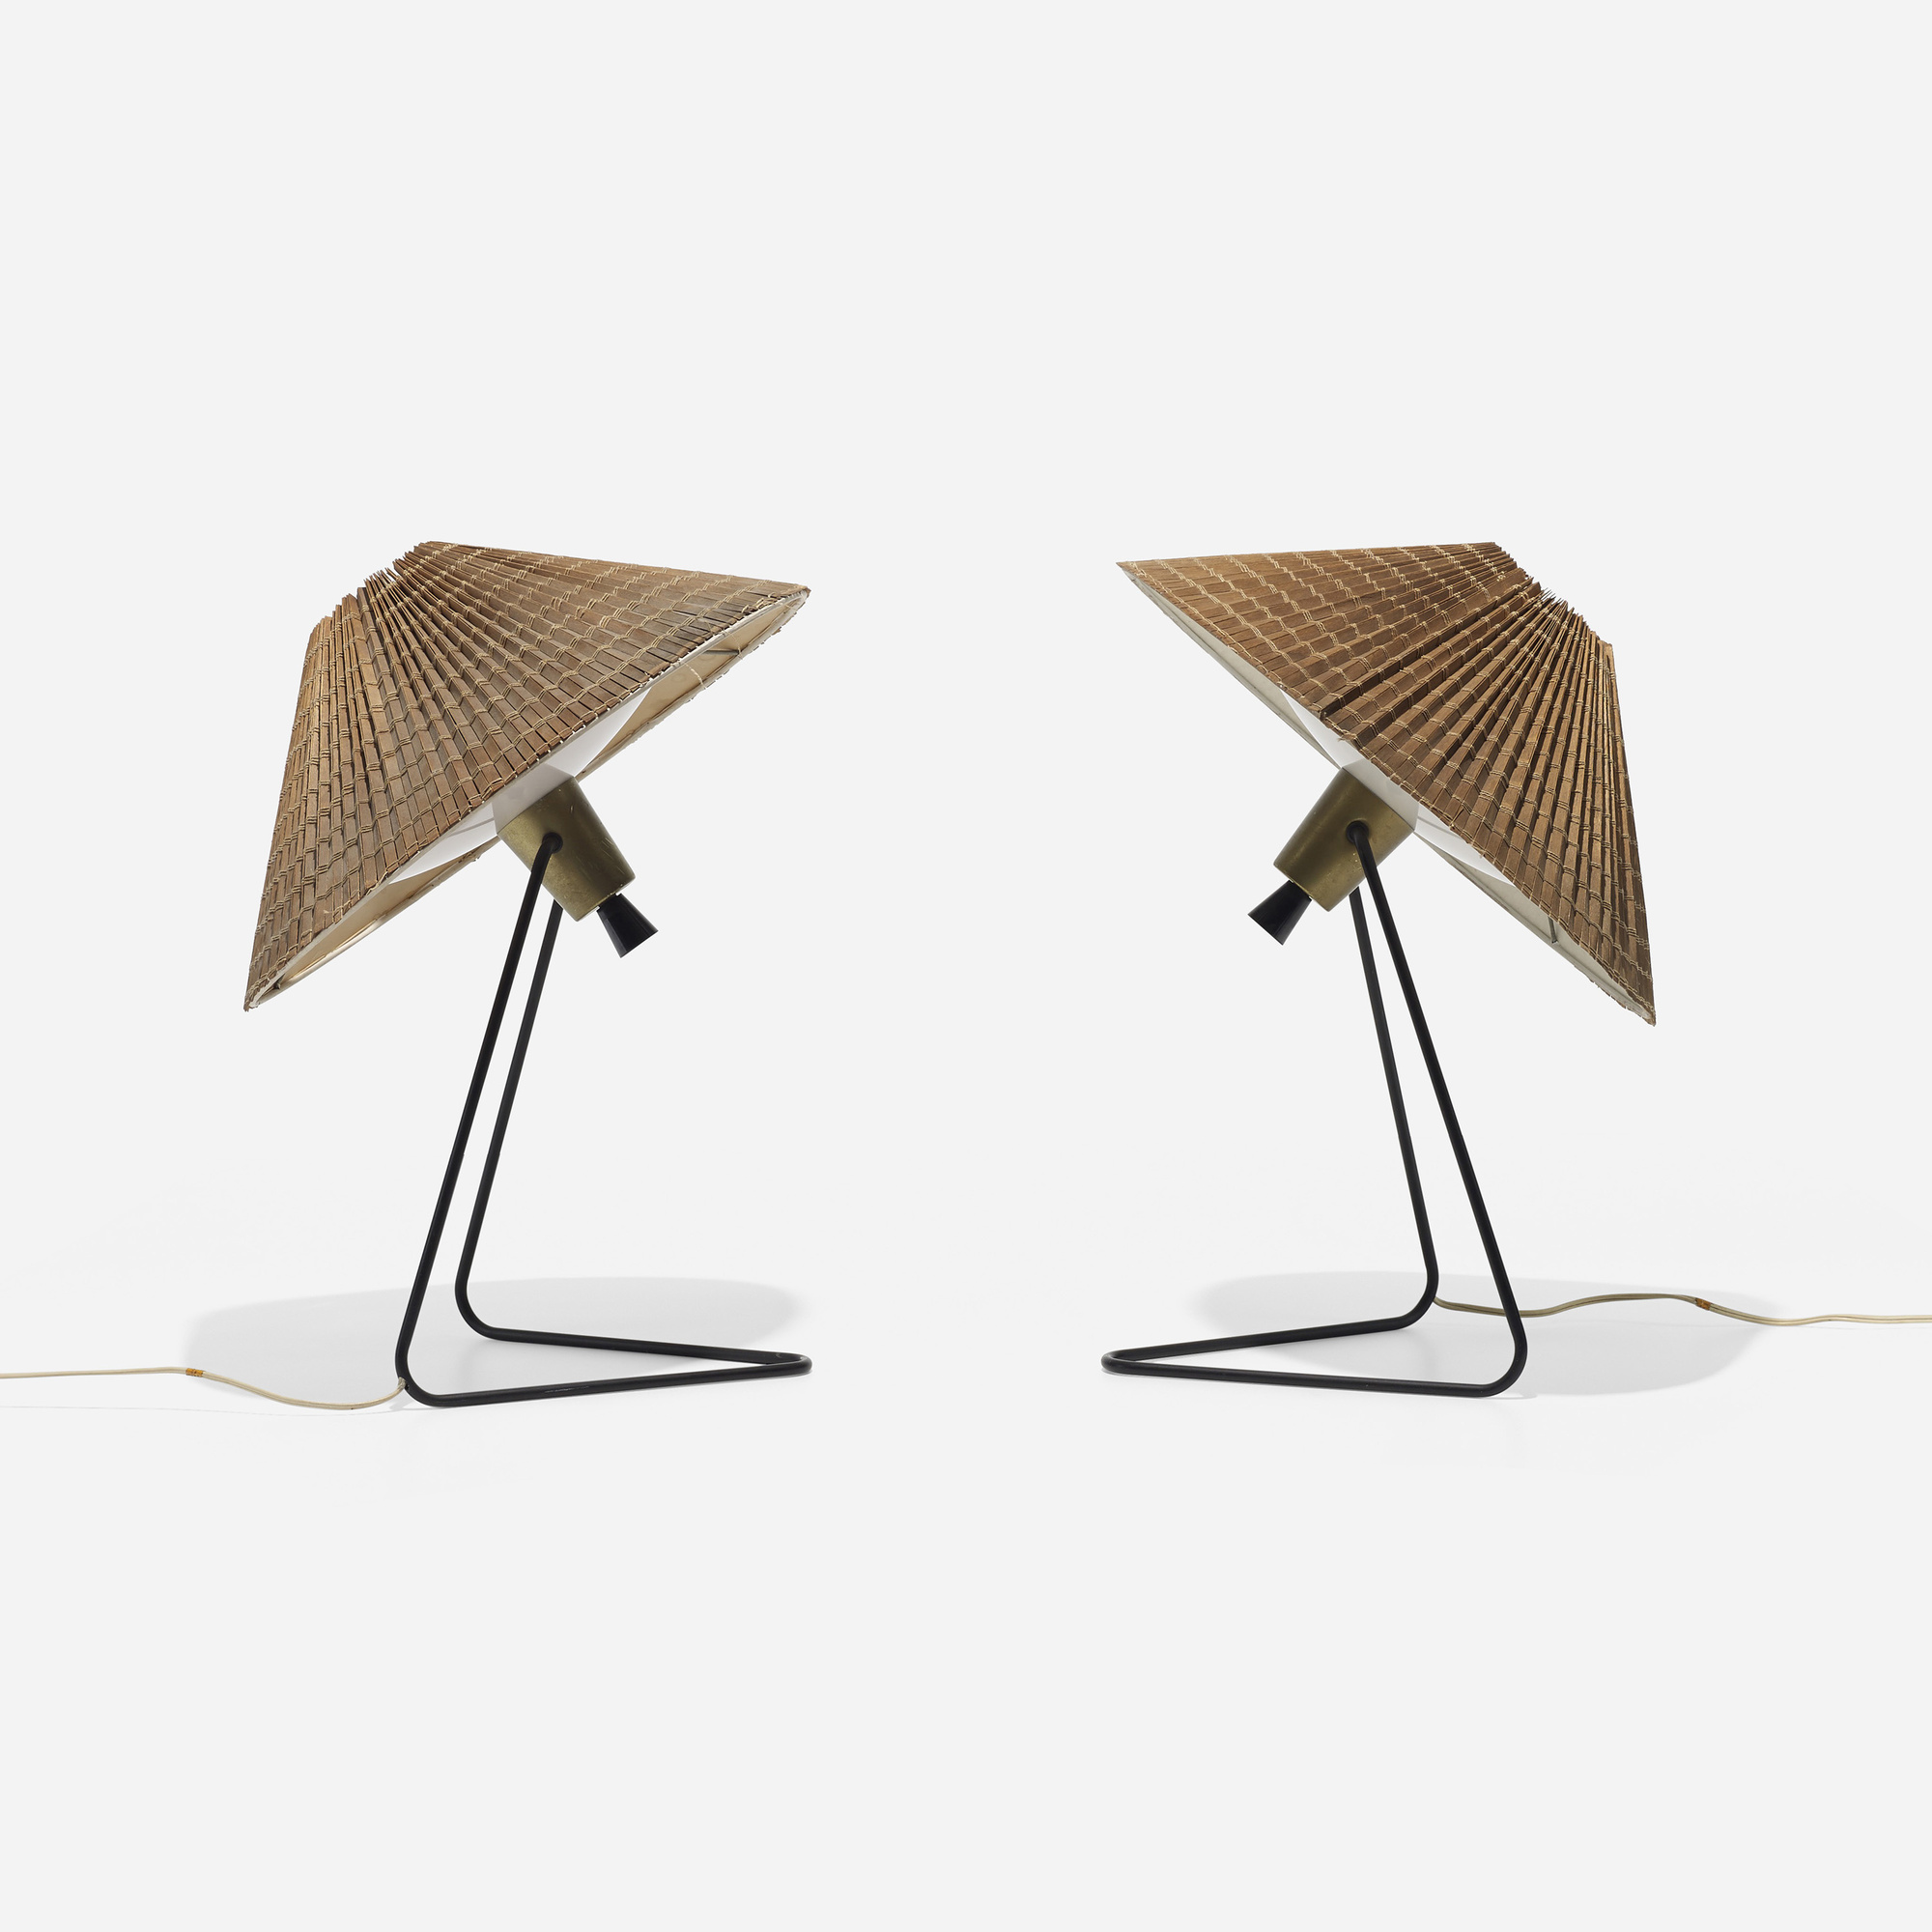 auctions american thurston wright auction september gerald lamps pair lamp of table design